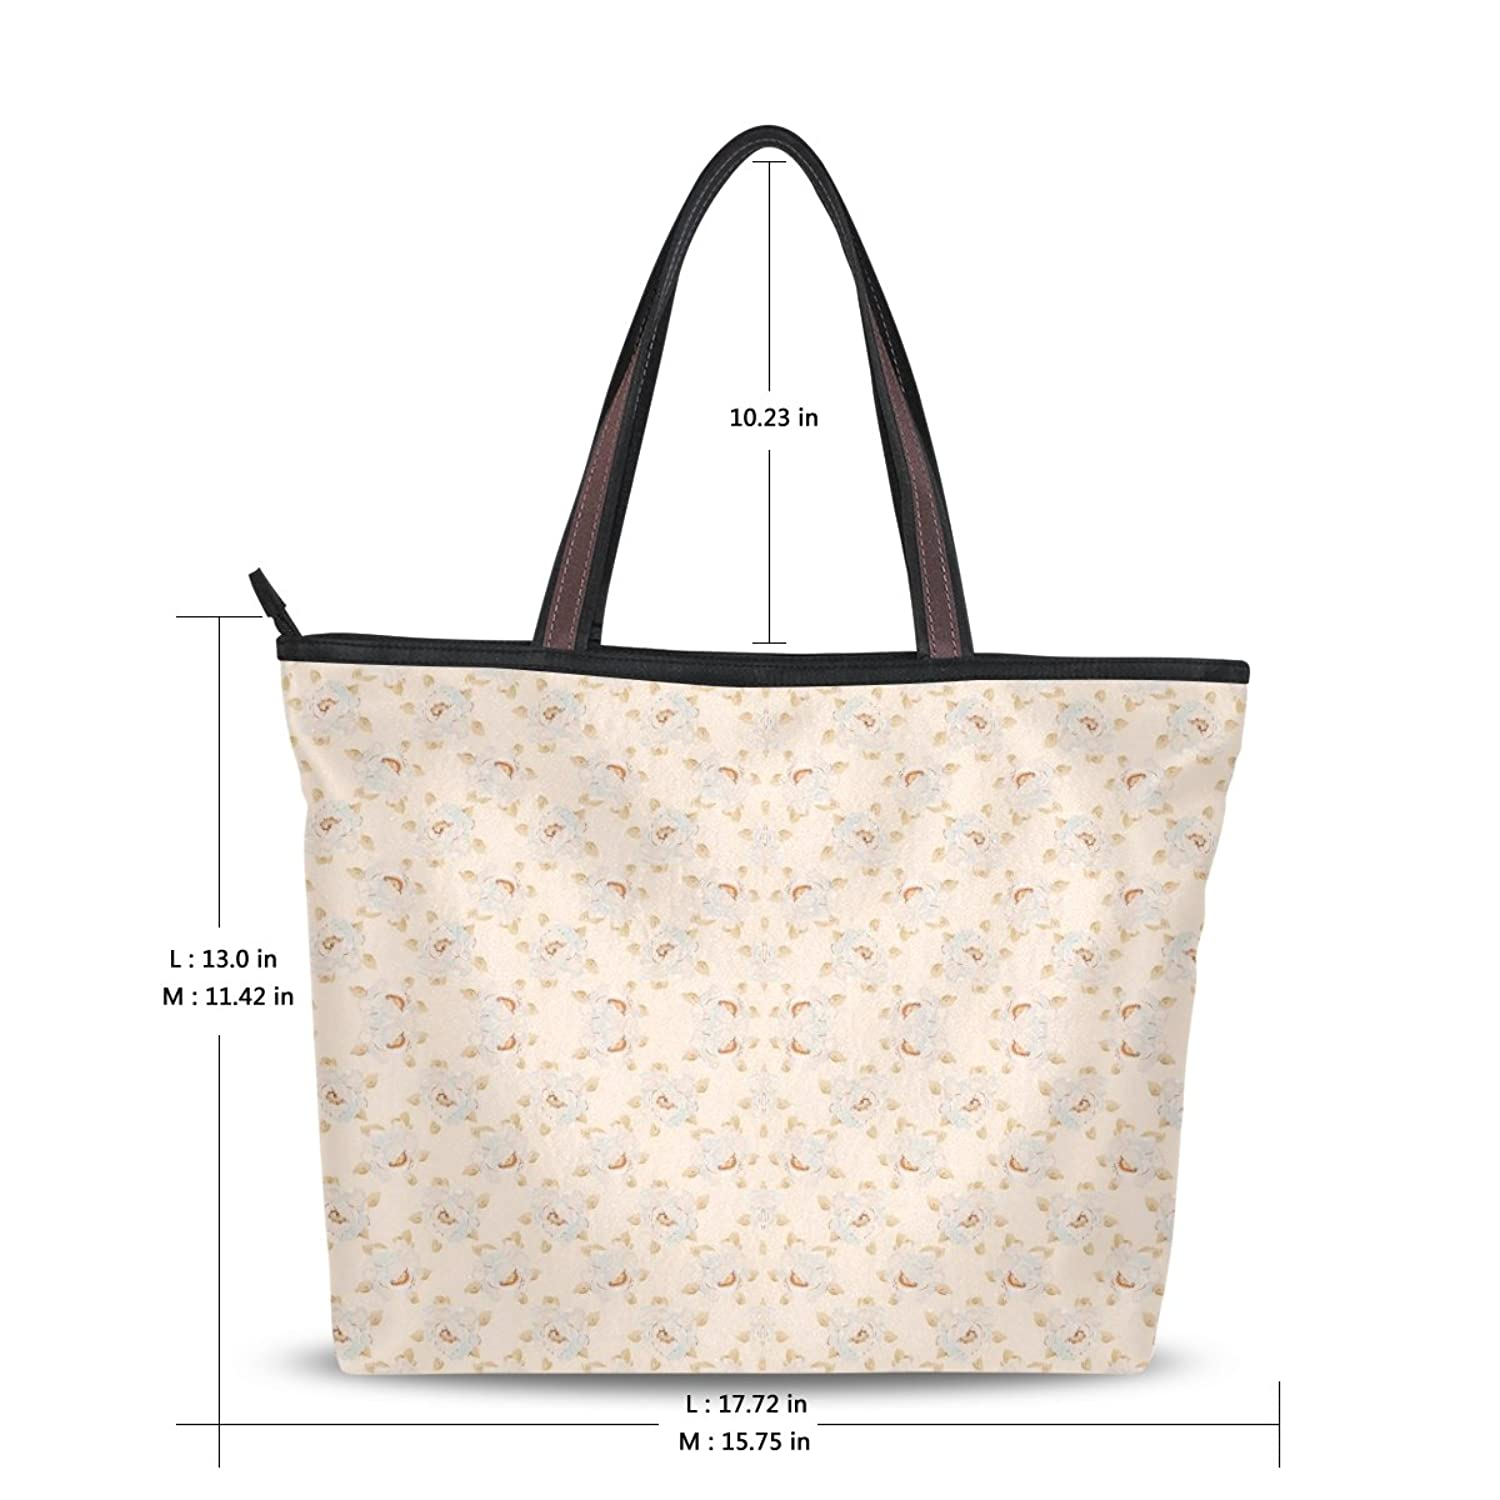 LEEZONE Fashion Shoulder Handbags with Elegant Flower Pattern Printing Tote Bags